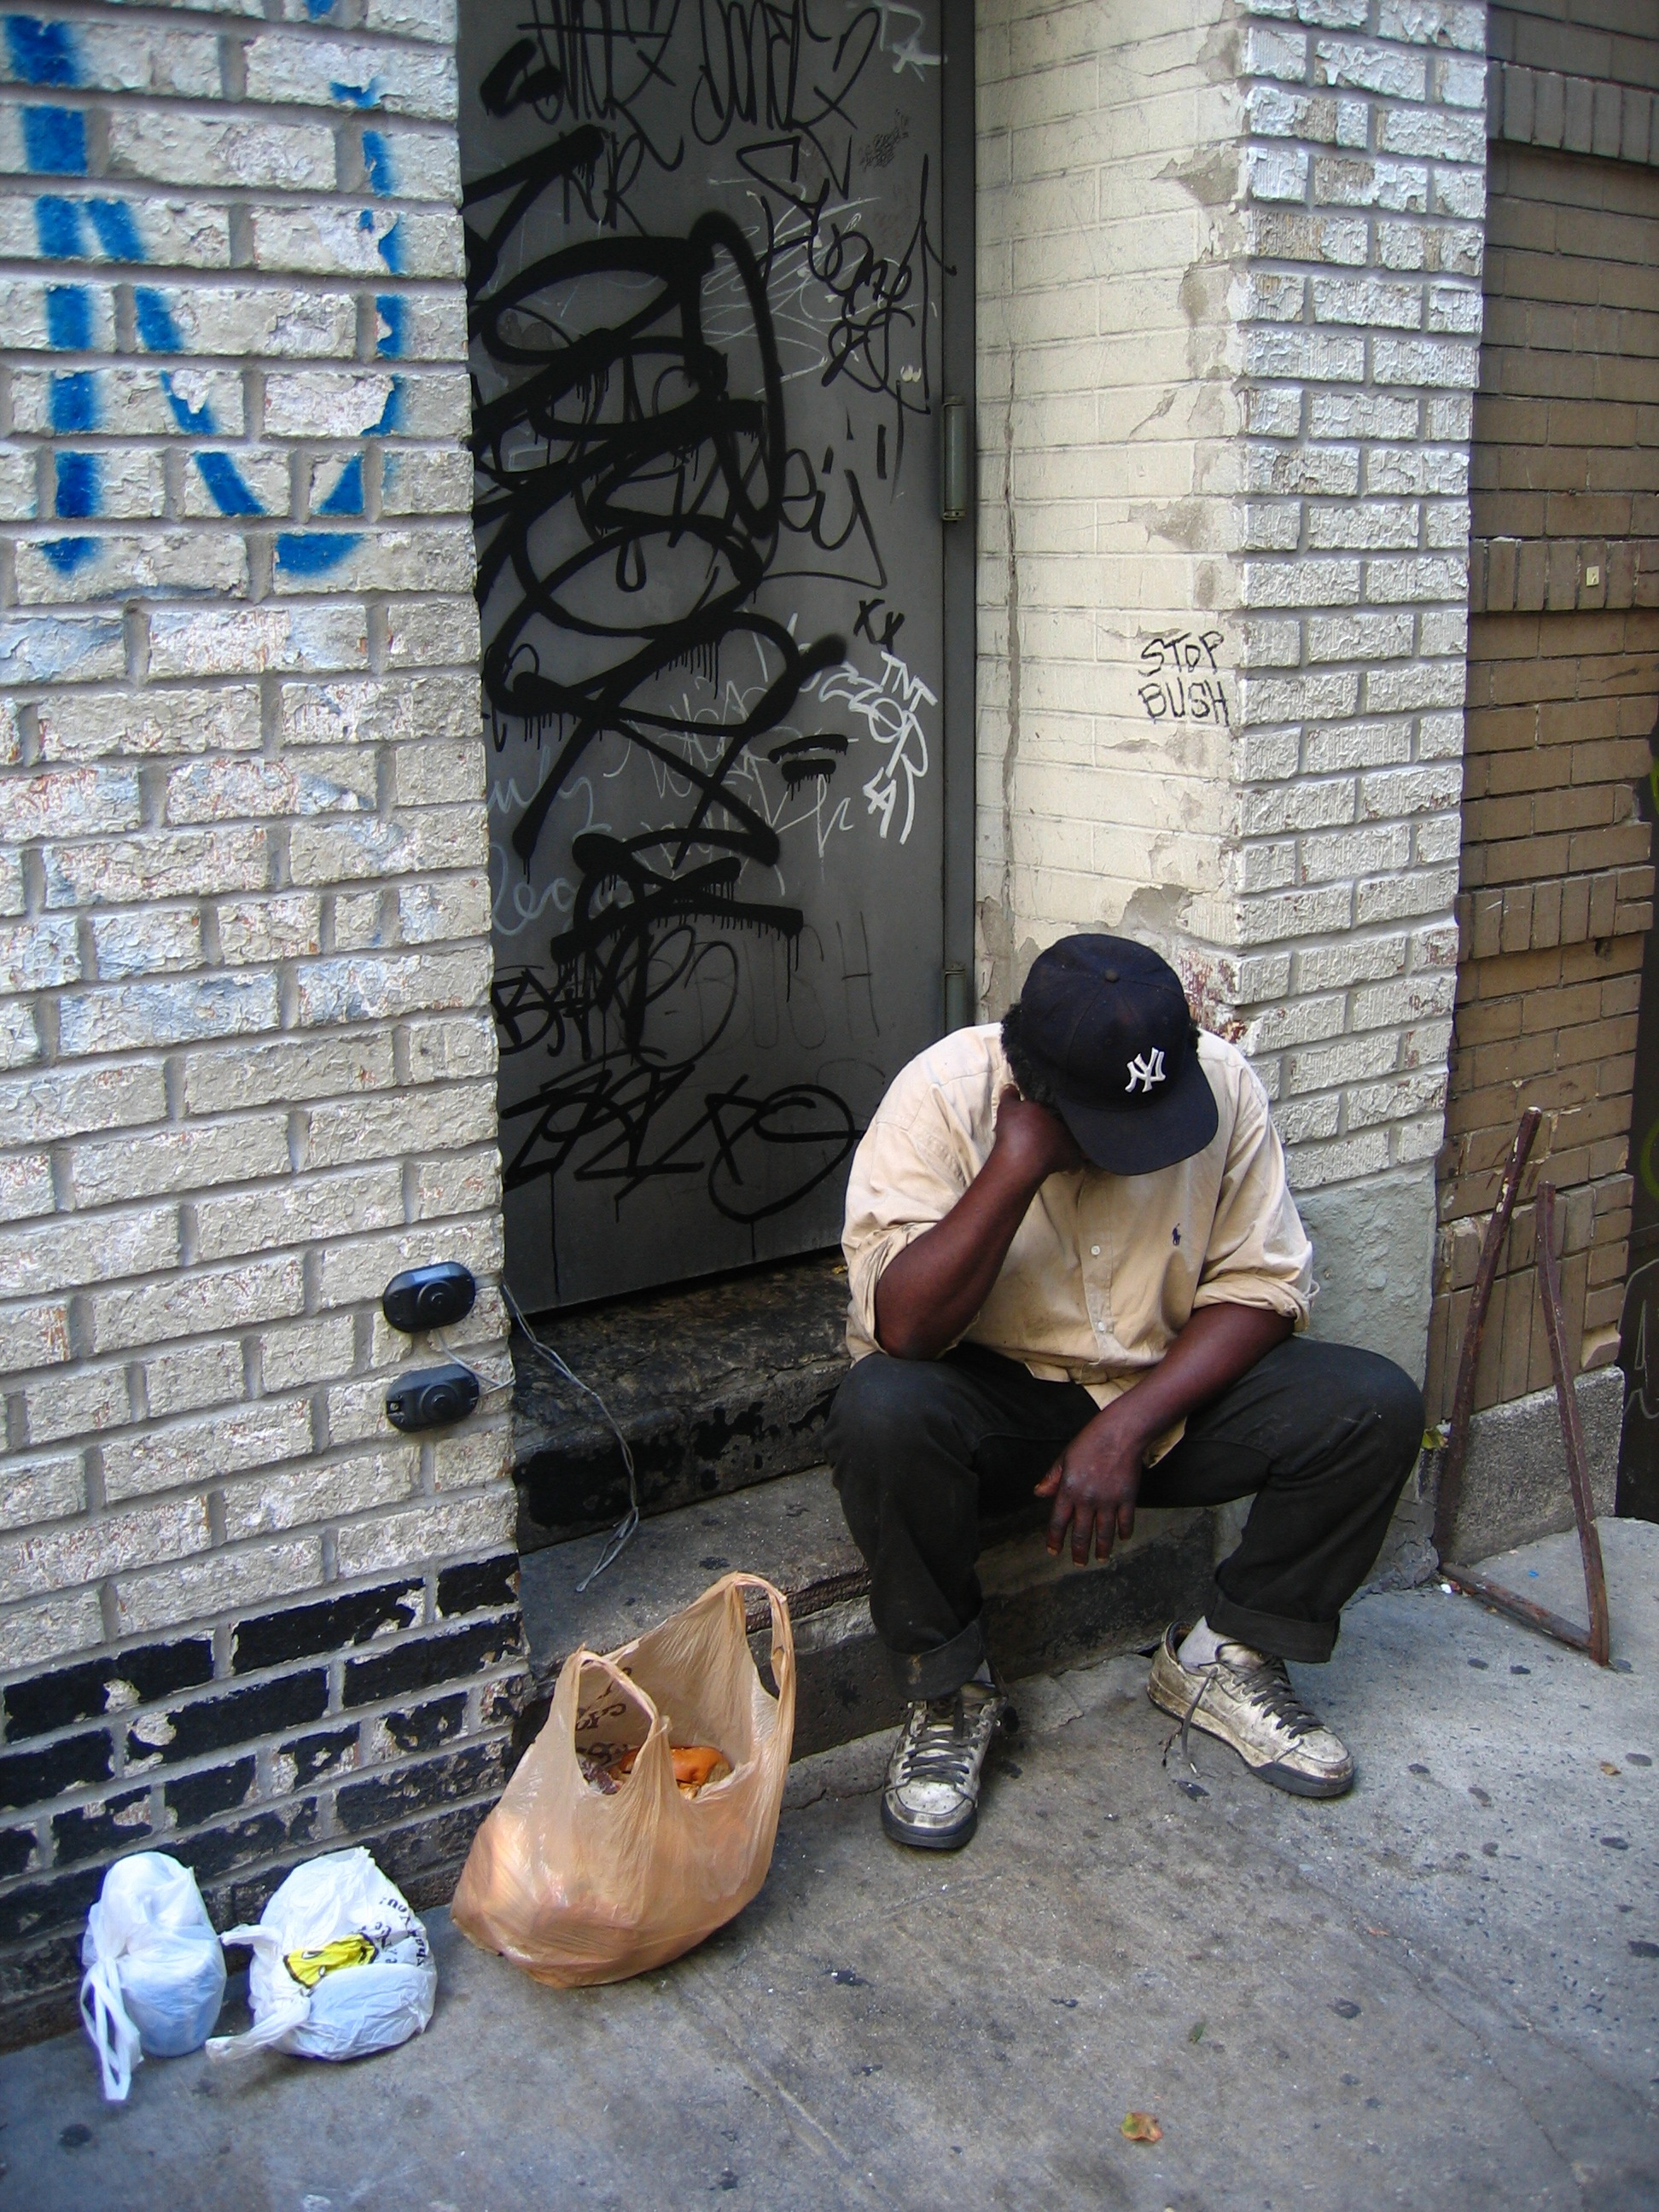 A look at the problems of growing number of homeless people in america